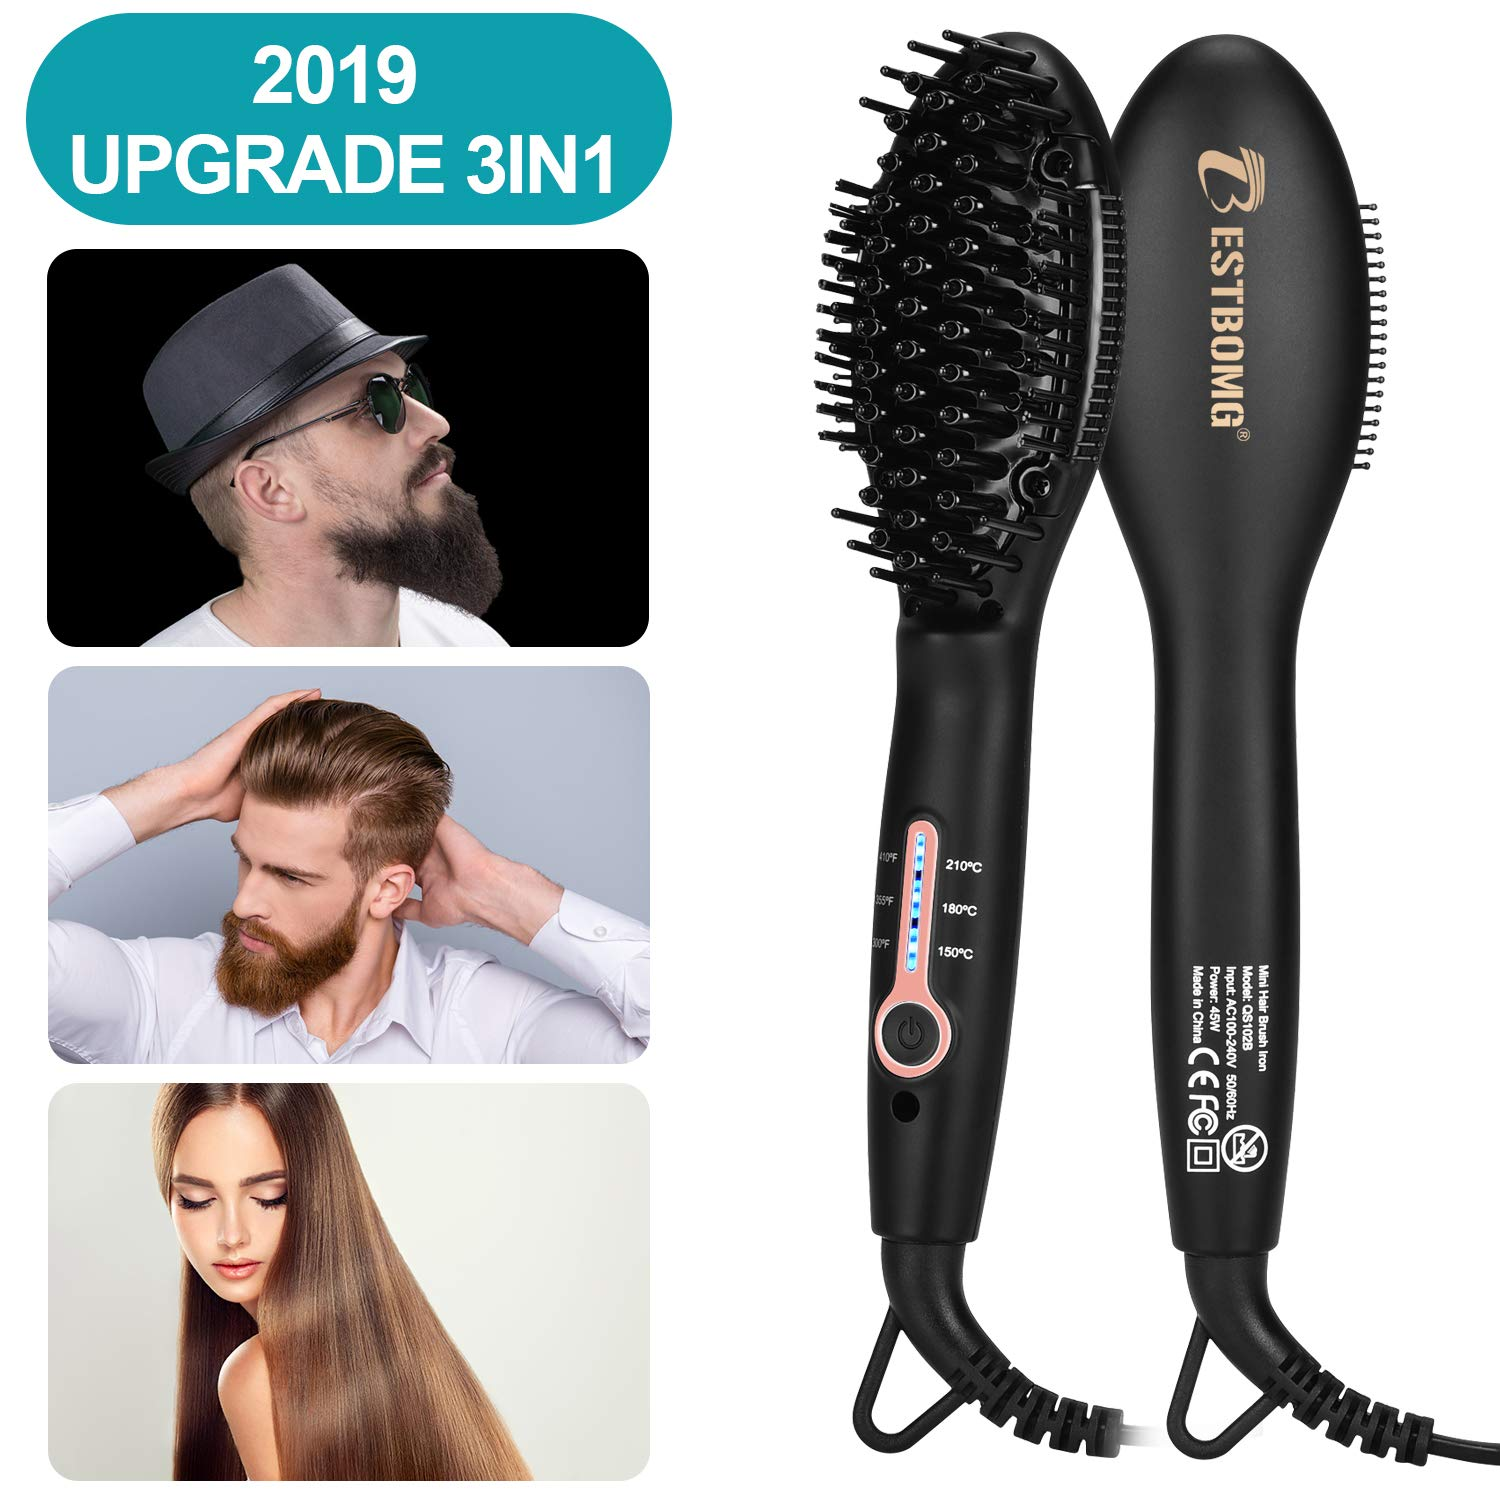 Ionic Beard Straightener Comb for men